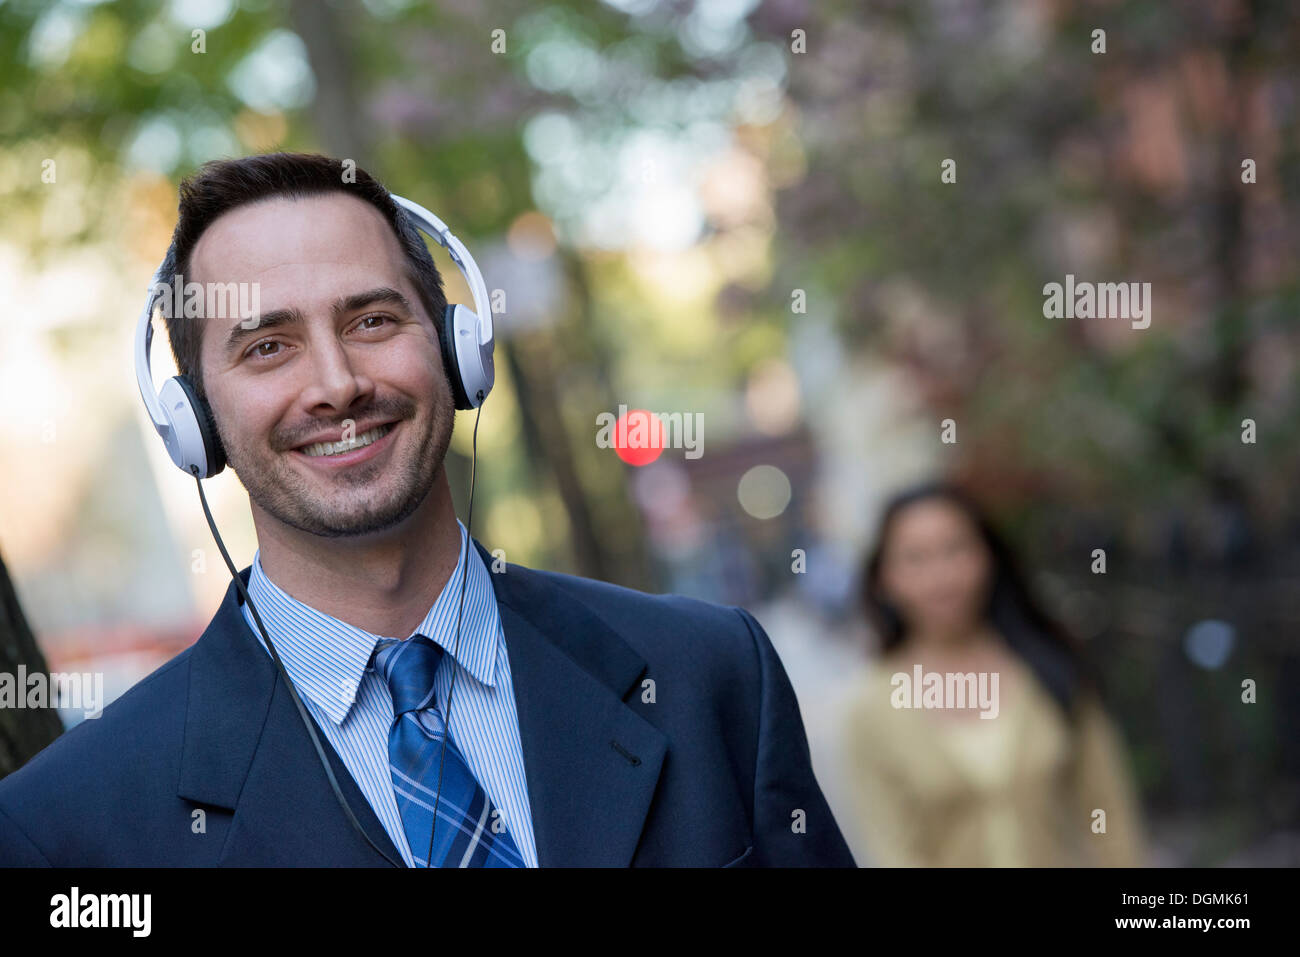 A man in a business suit wearing white headphones, listening to music. - Stock Image